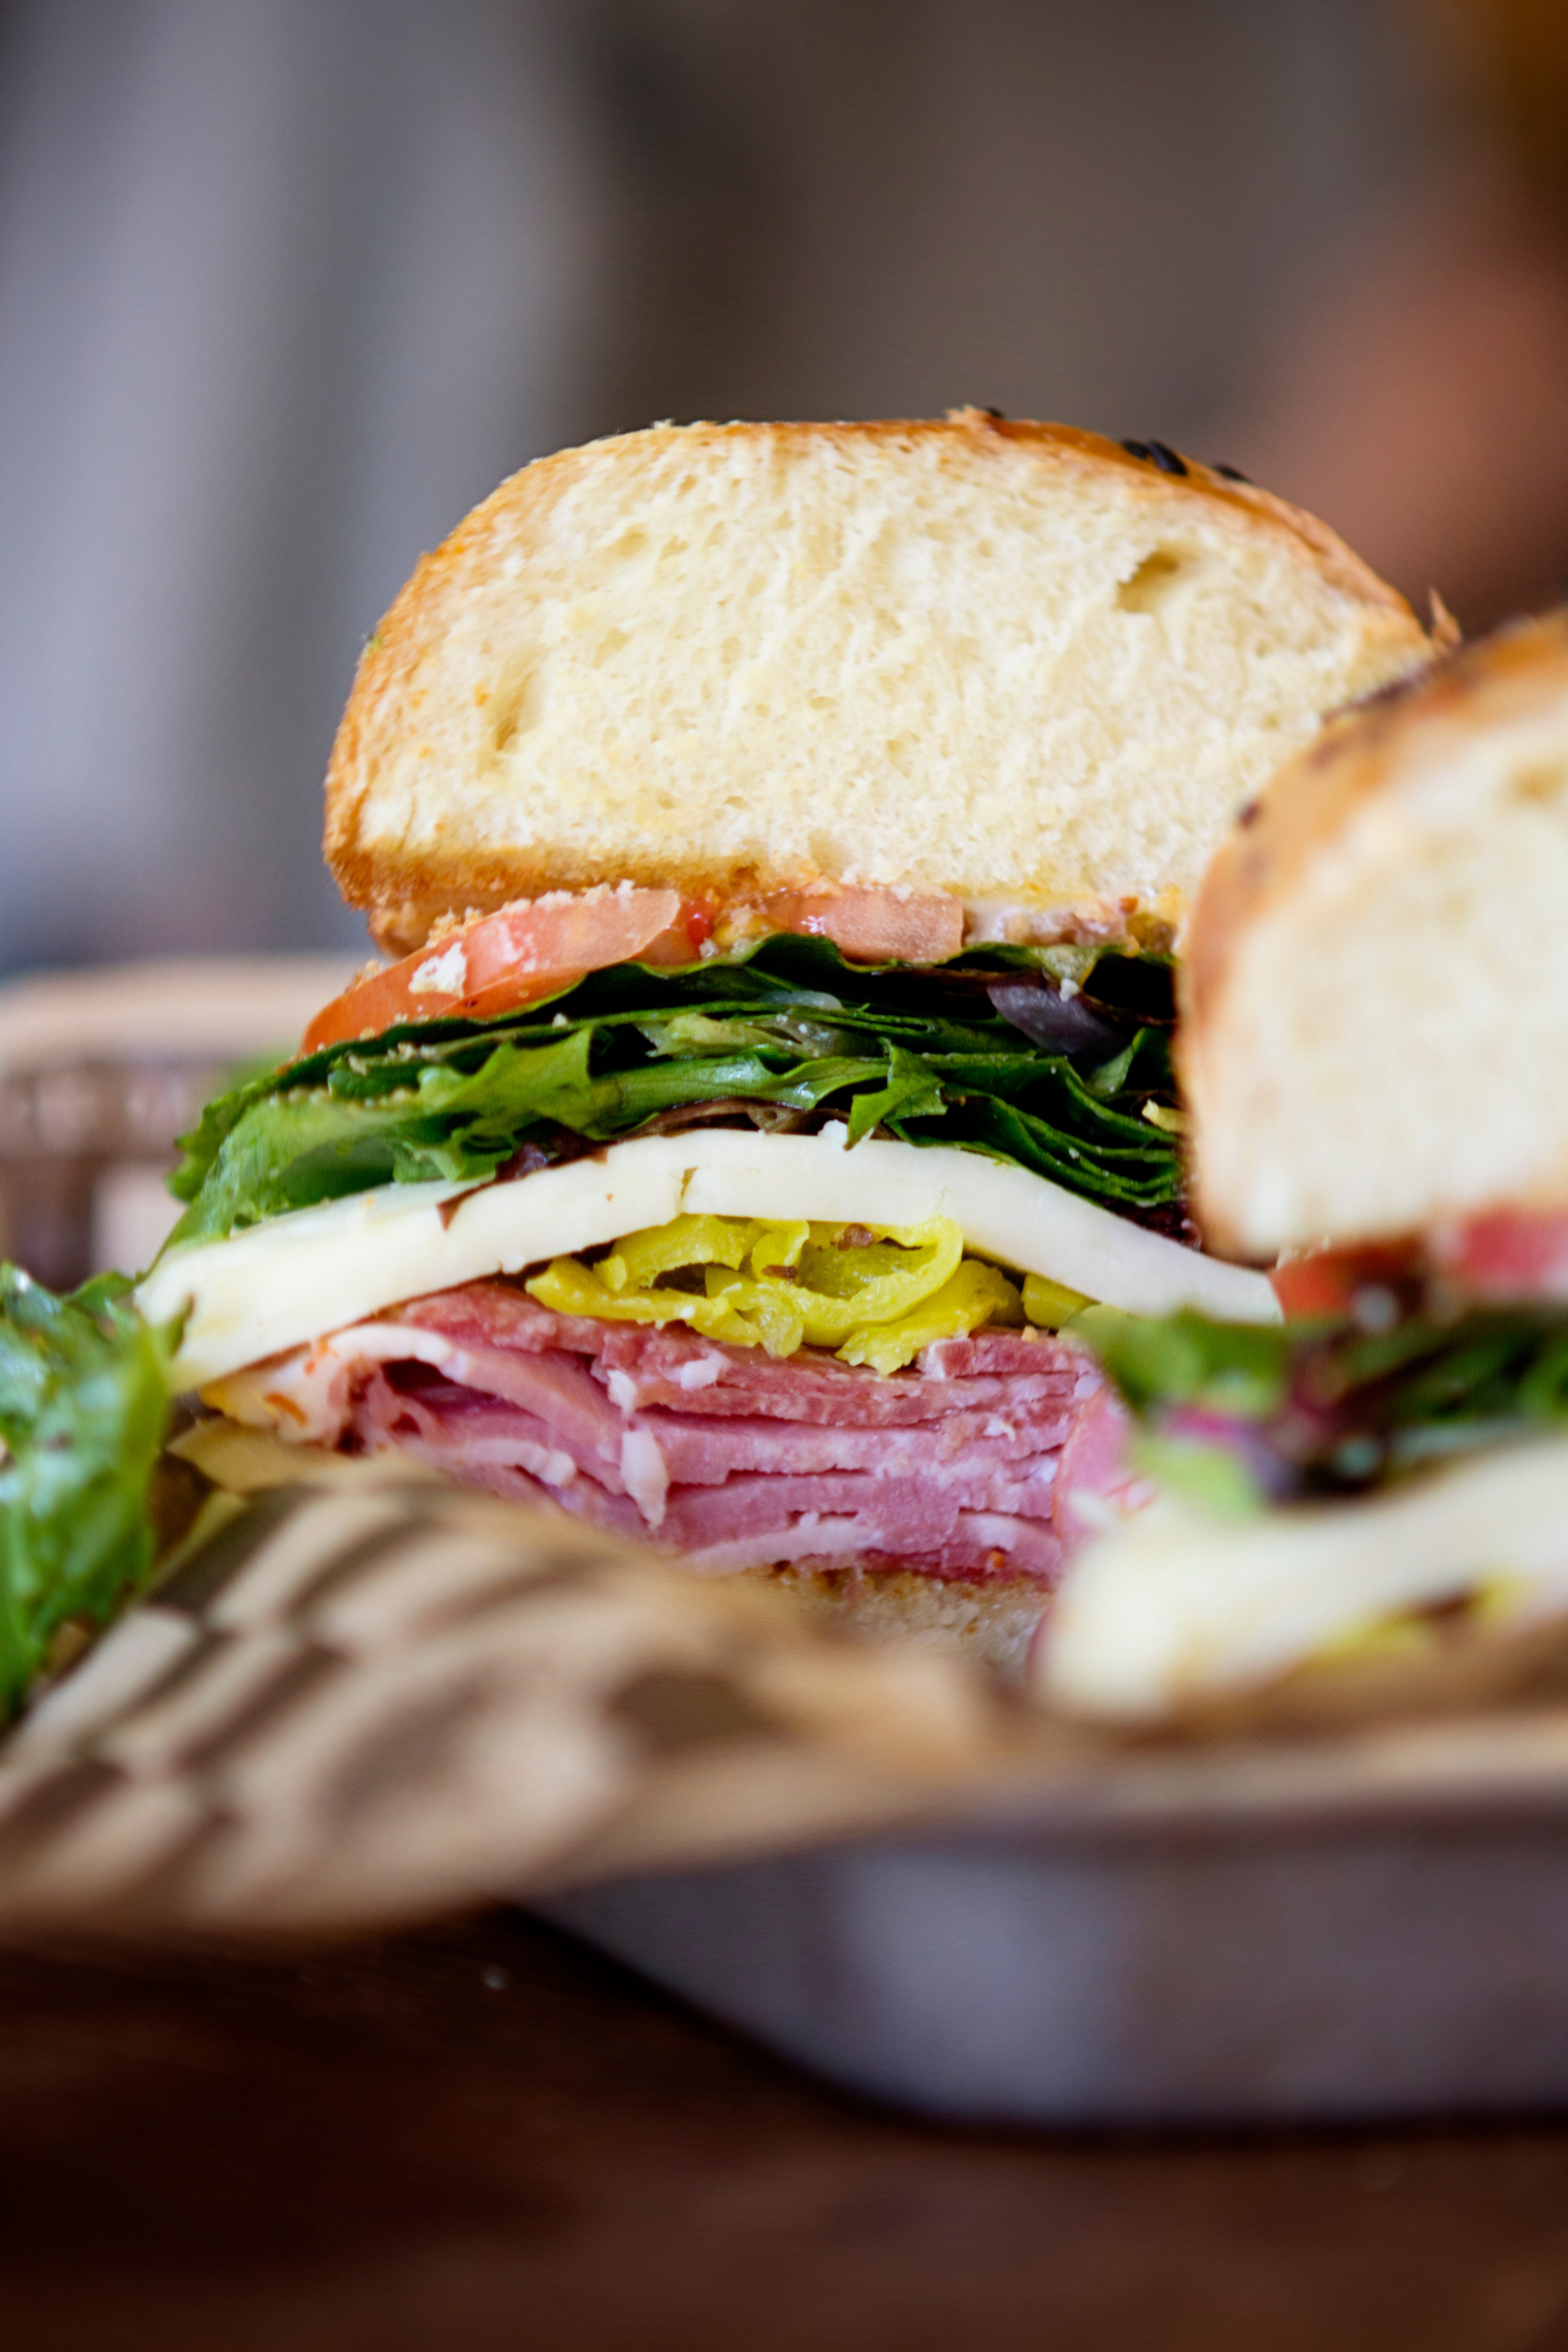 Olive Market place and cafe market sandwhich.jpg